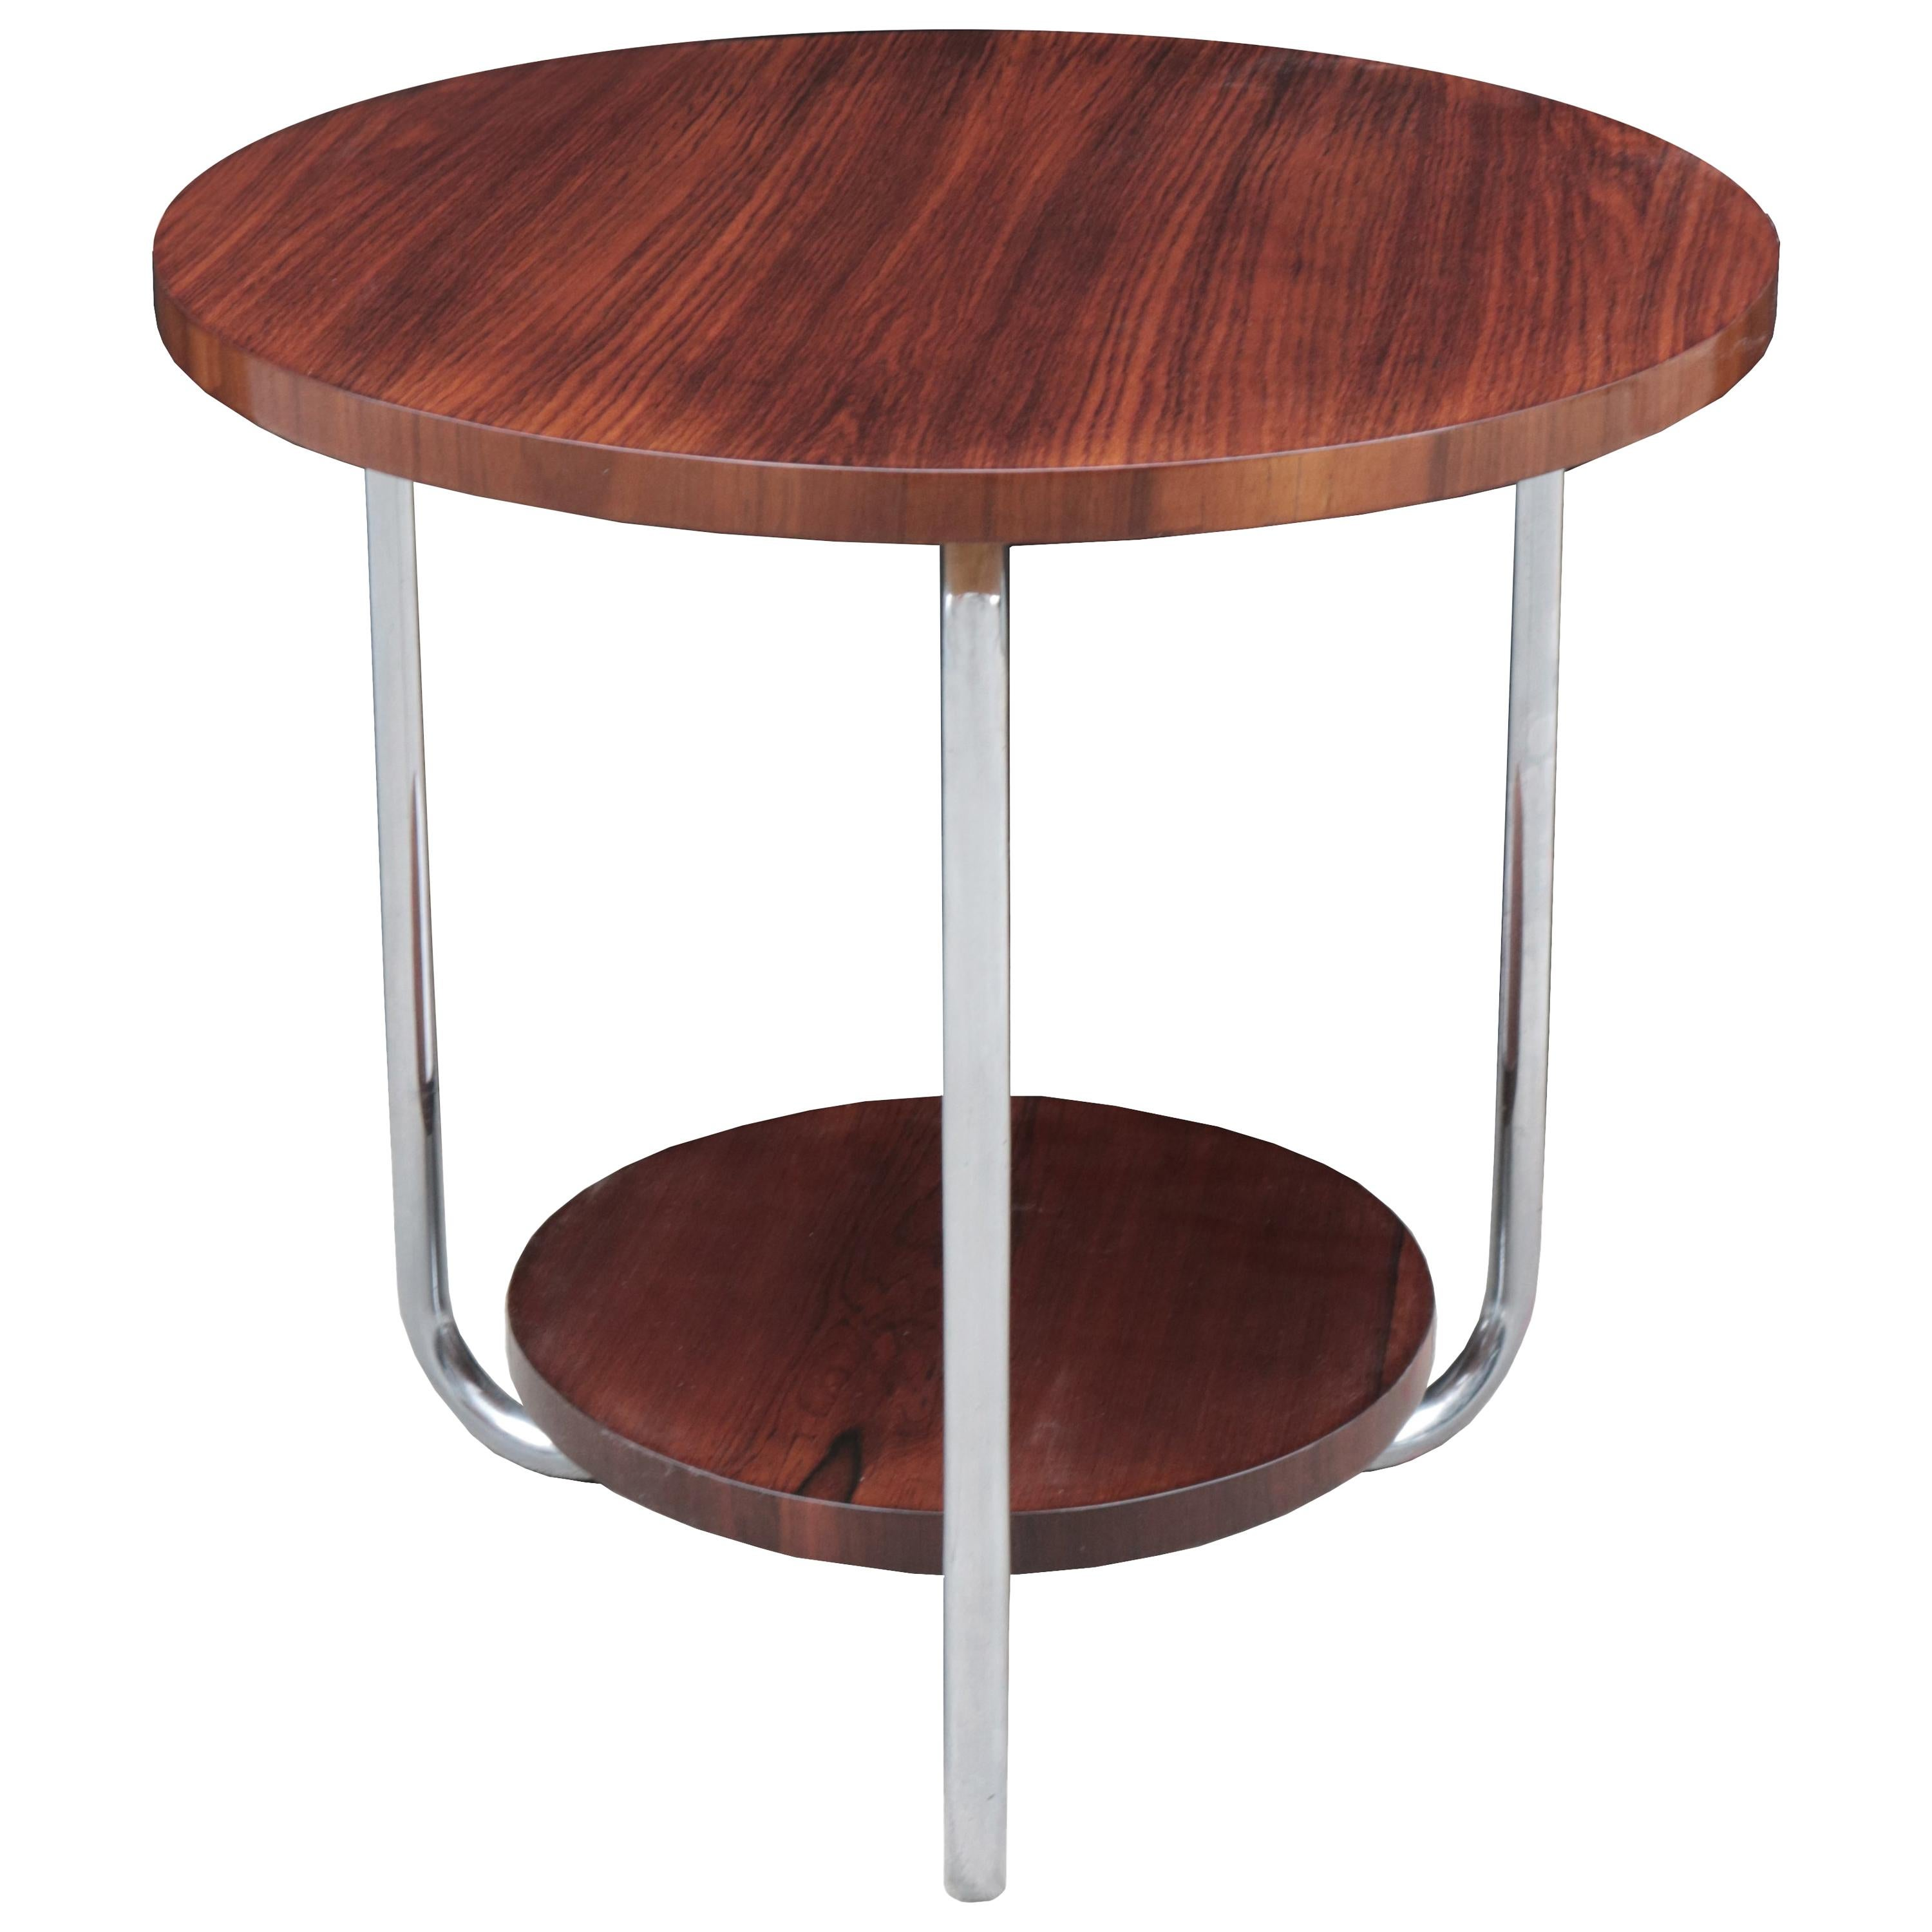 Round Two-Tier Side Table